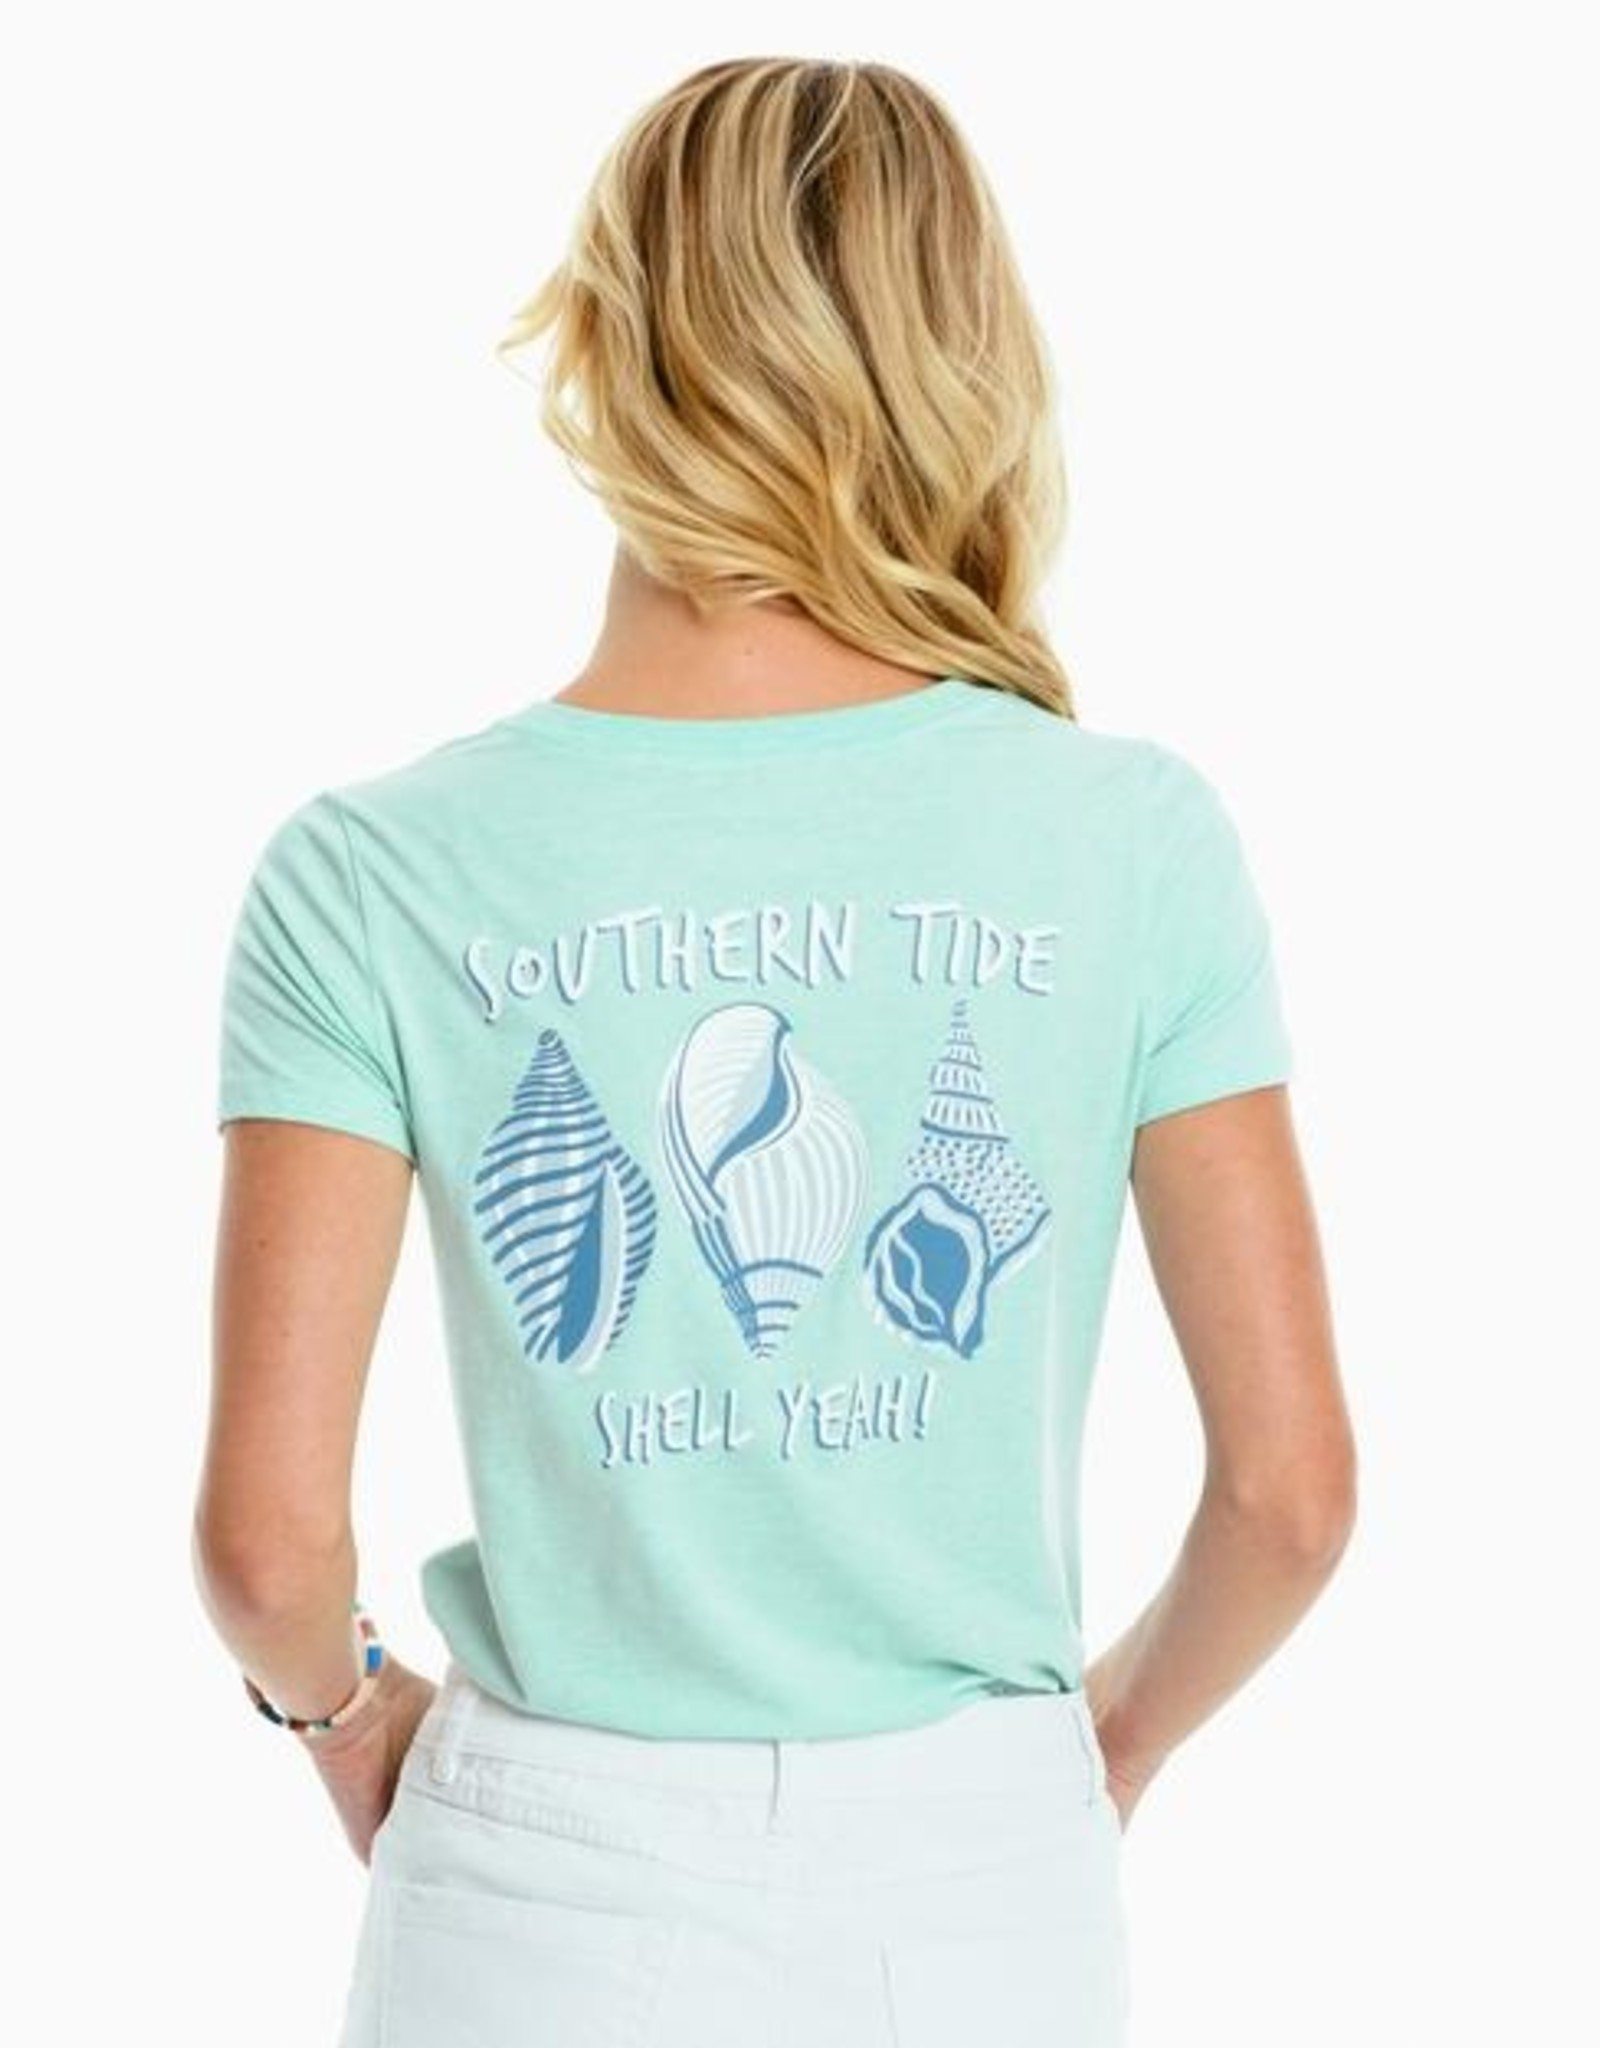 Southern Tide Shell Yeah Fitted Tee